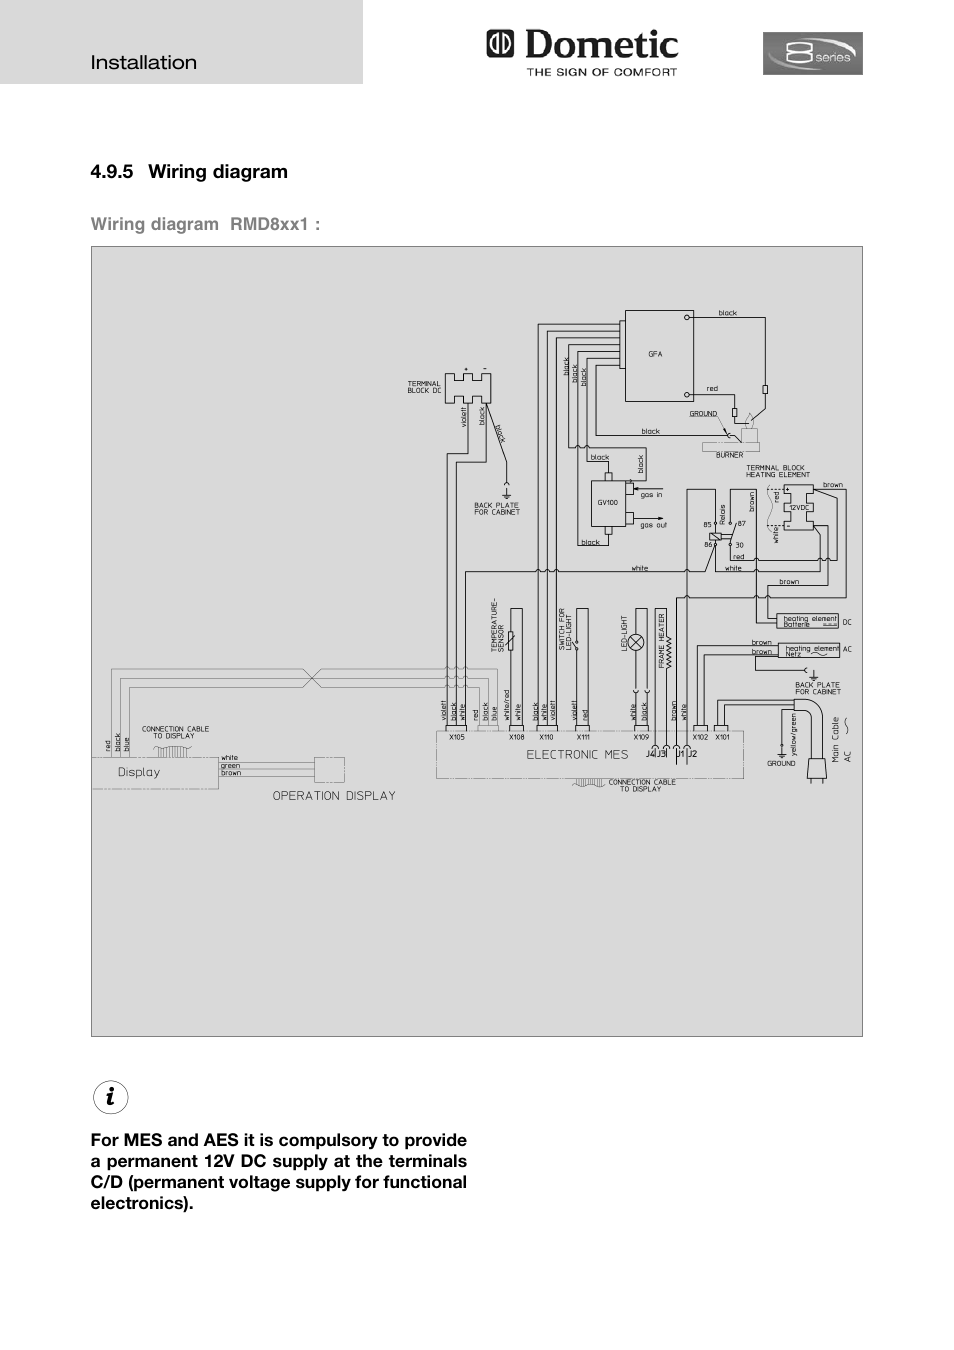 hight resolution of dometic ccc2 wiring diagram 27 wiring diagram images wiring refrigerator diagram board dometic 1350slmx dometic refrigerator wiring diagram rm2662